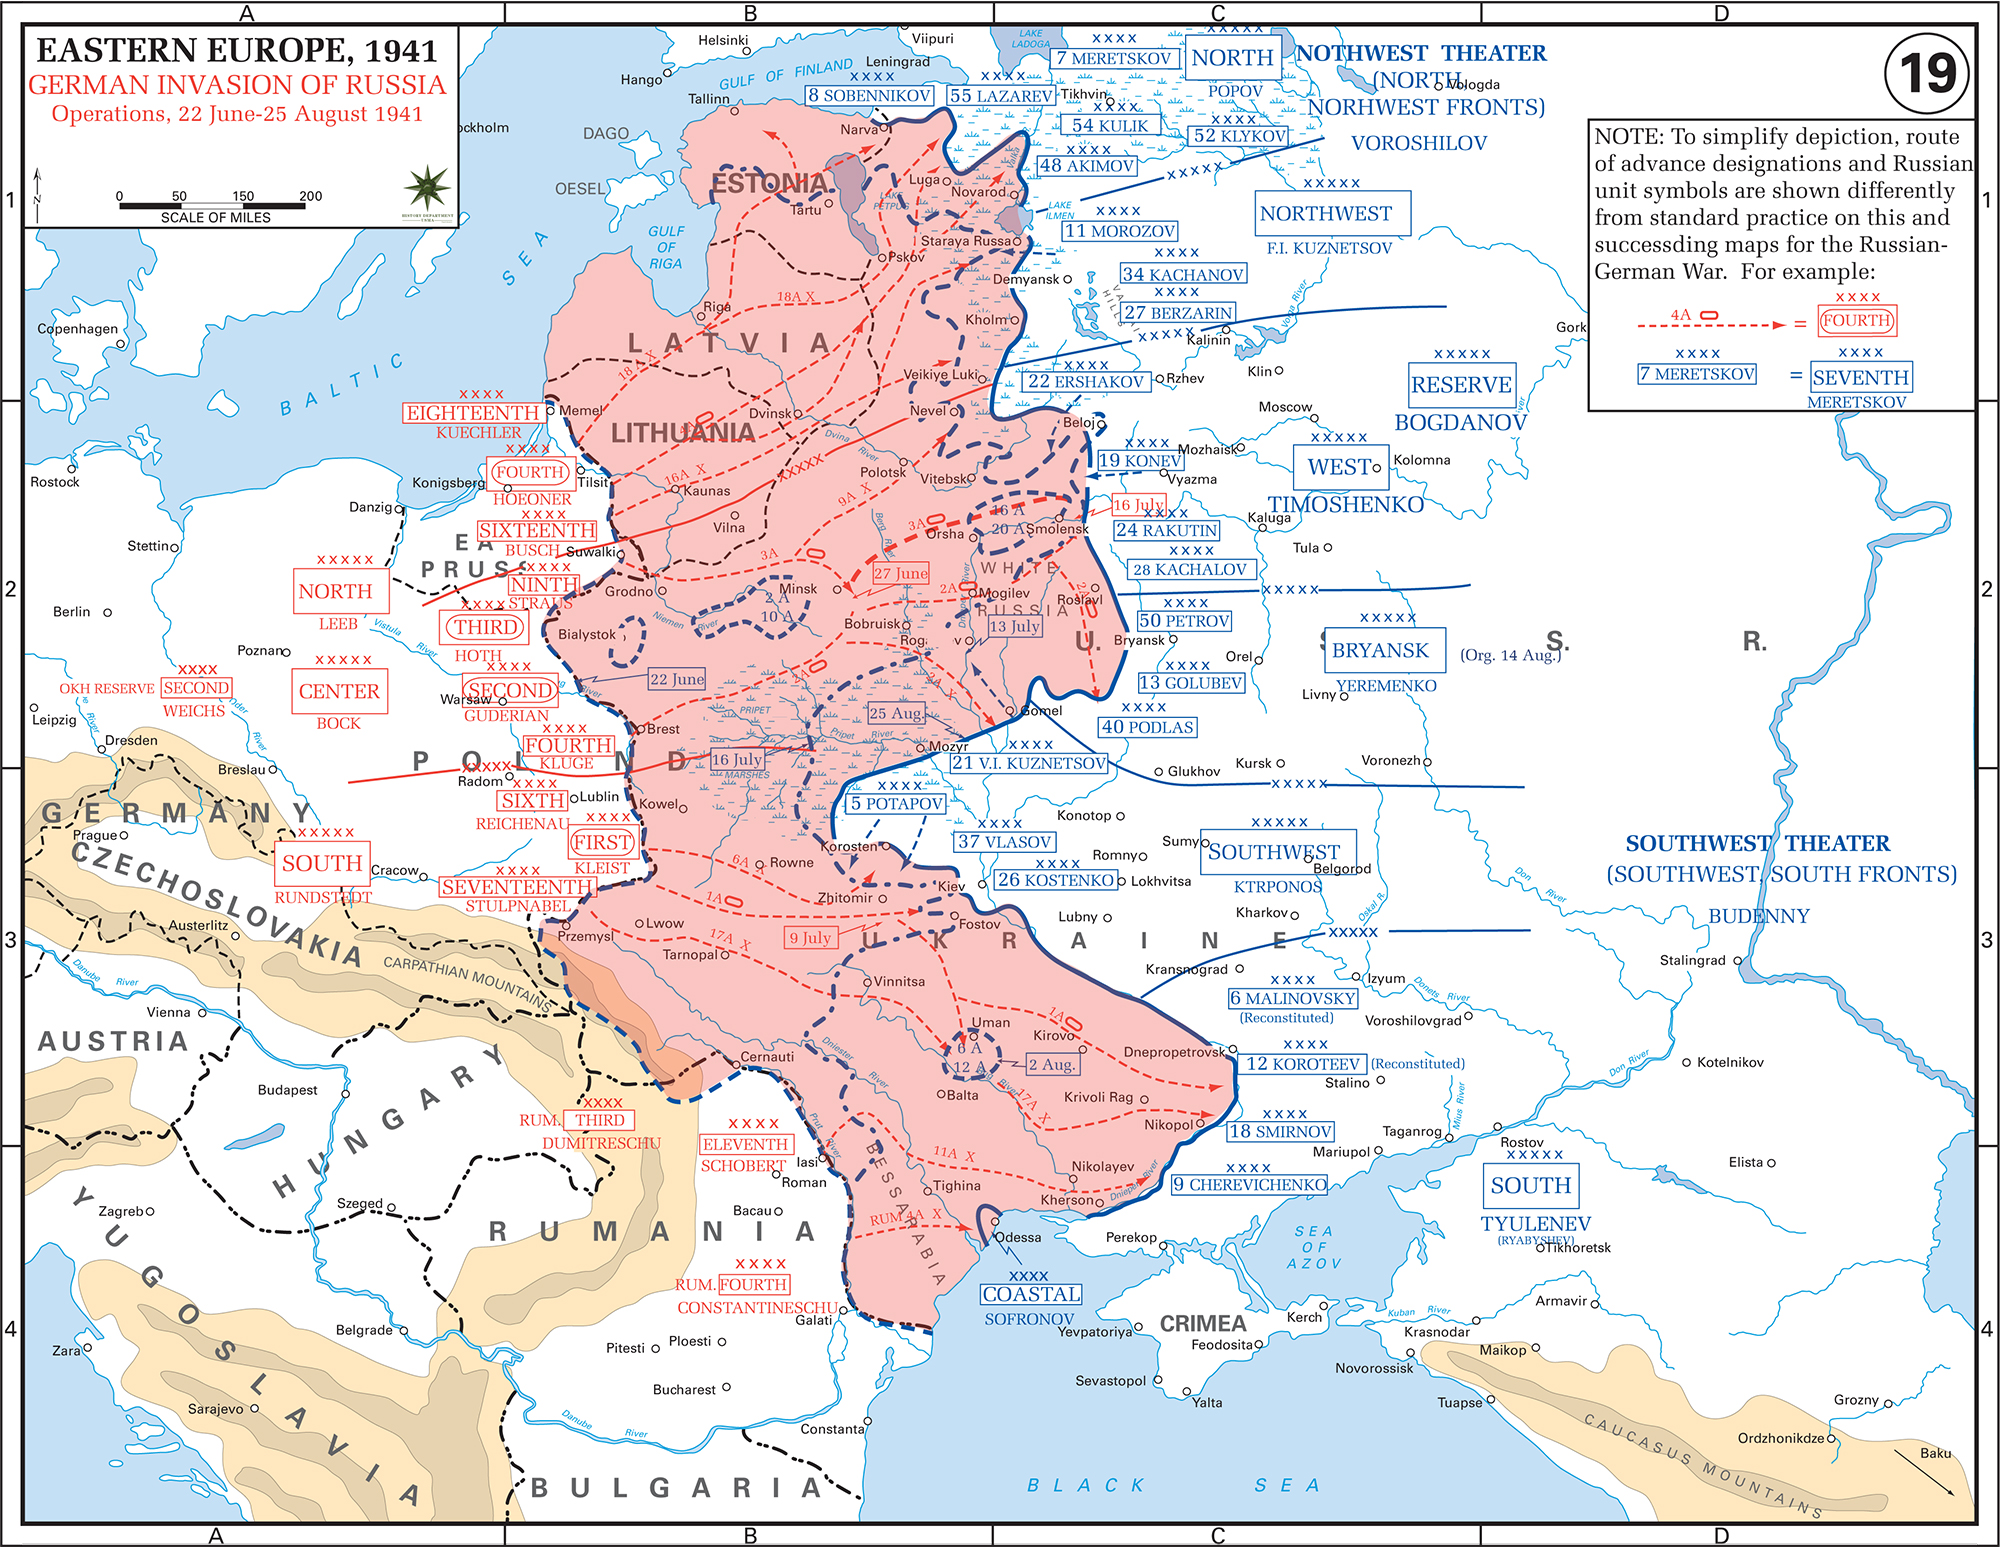 WWII - German Invasion of Russia Operations June 22-August 25, 1941